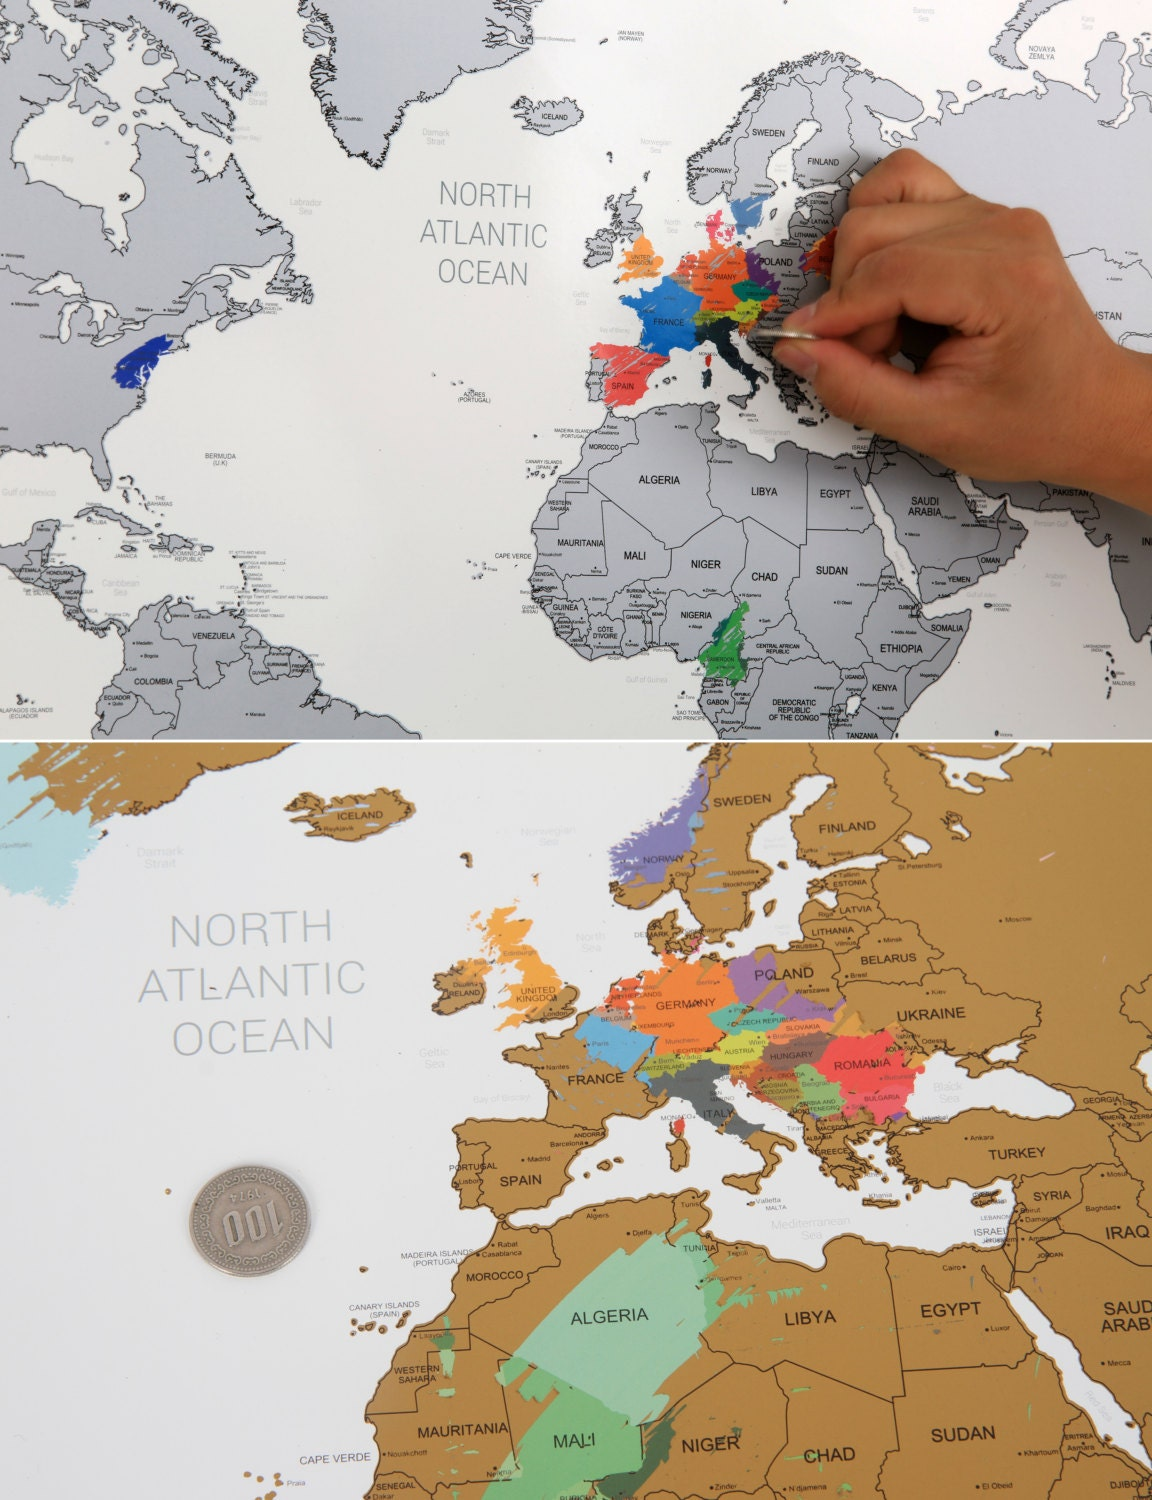 Scratch off world map poster silver gold from glassnam on etsy studio 2190 gumiabroncs Choice Image